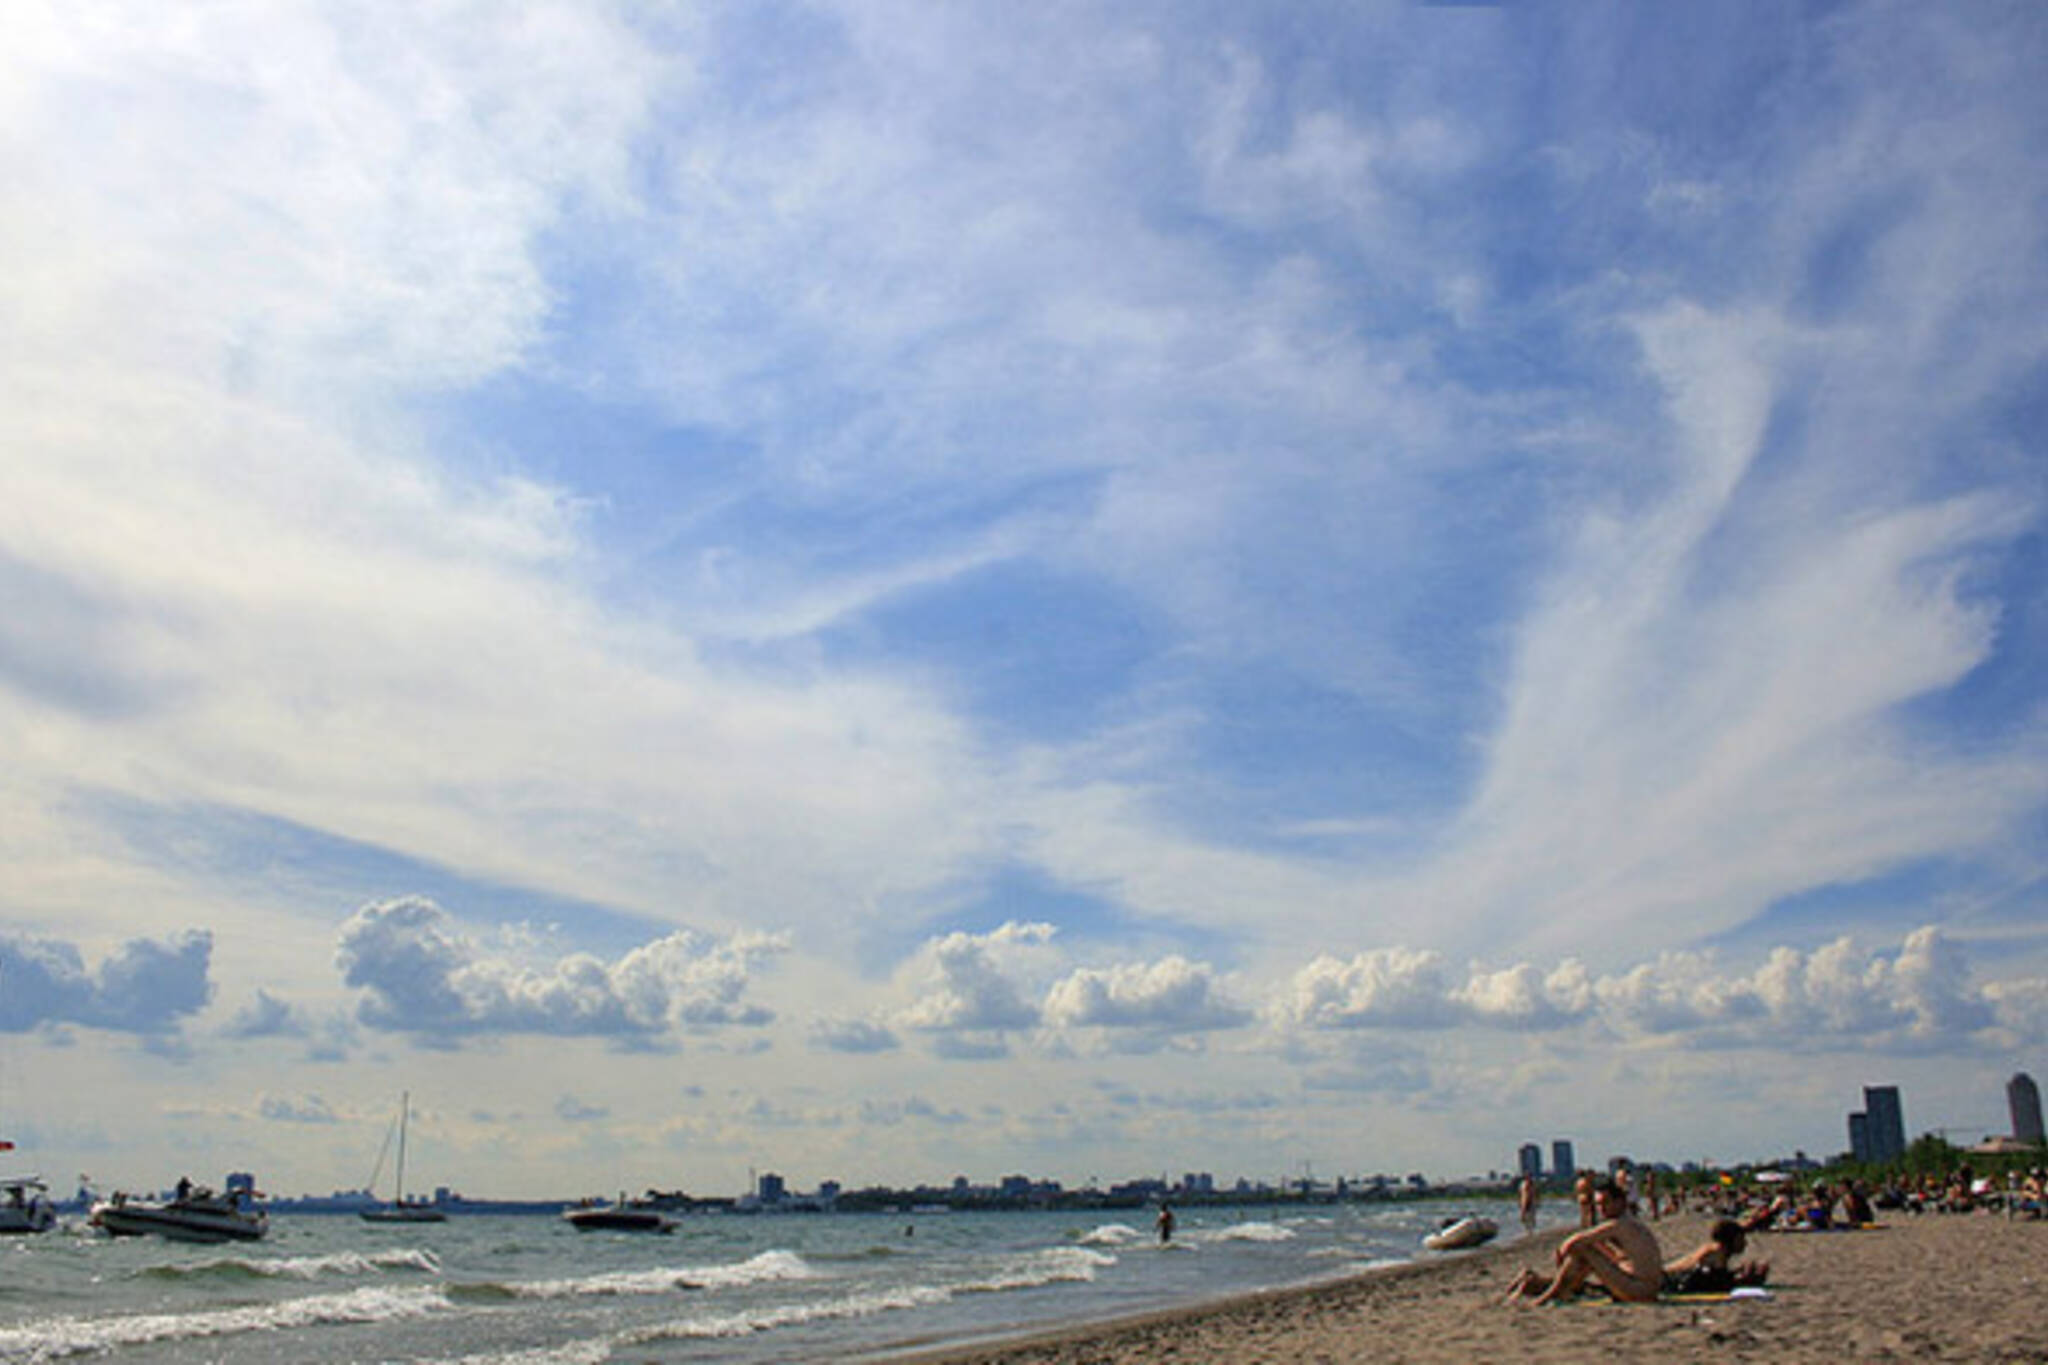 Hanlan's Point Beach